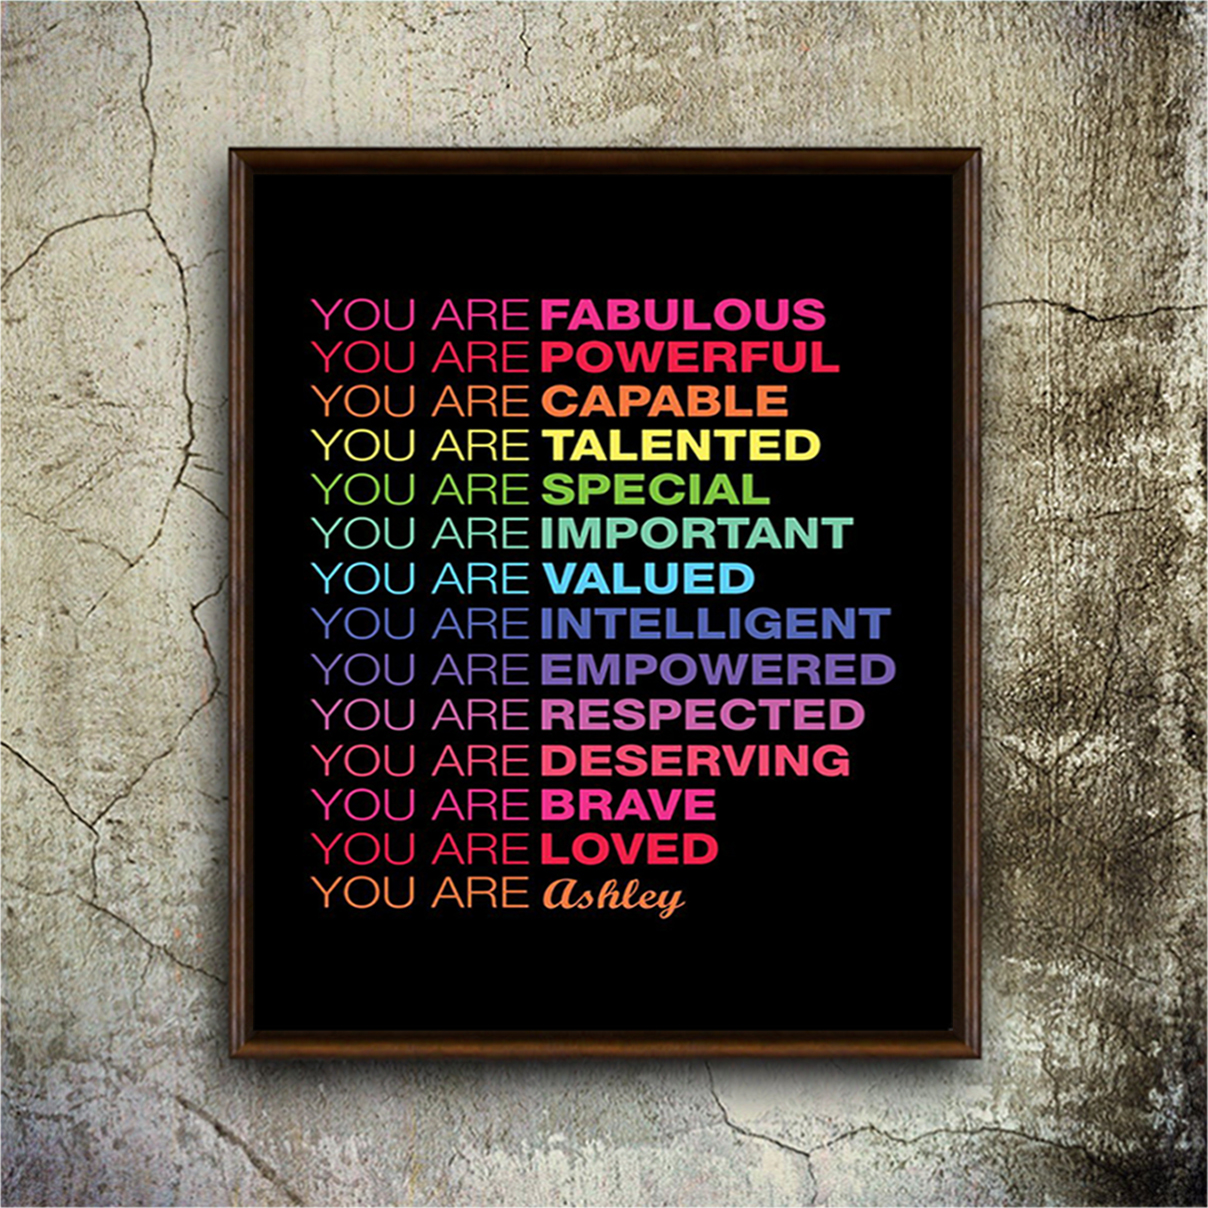 Personalized custom name You are fabulous you are powerful poster A3